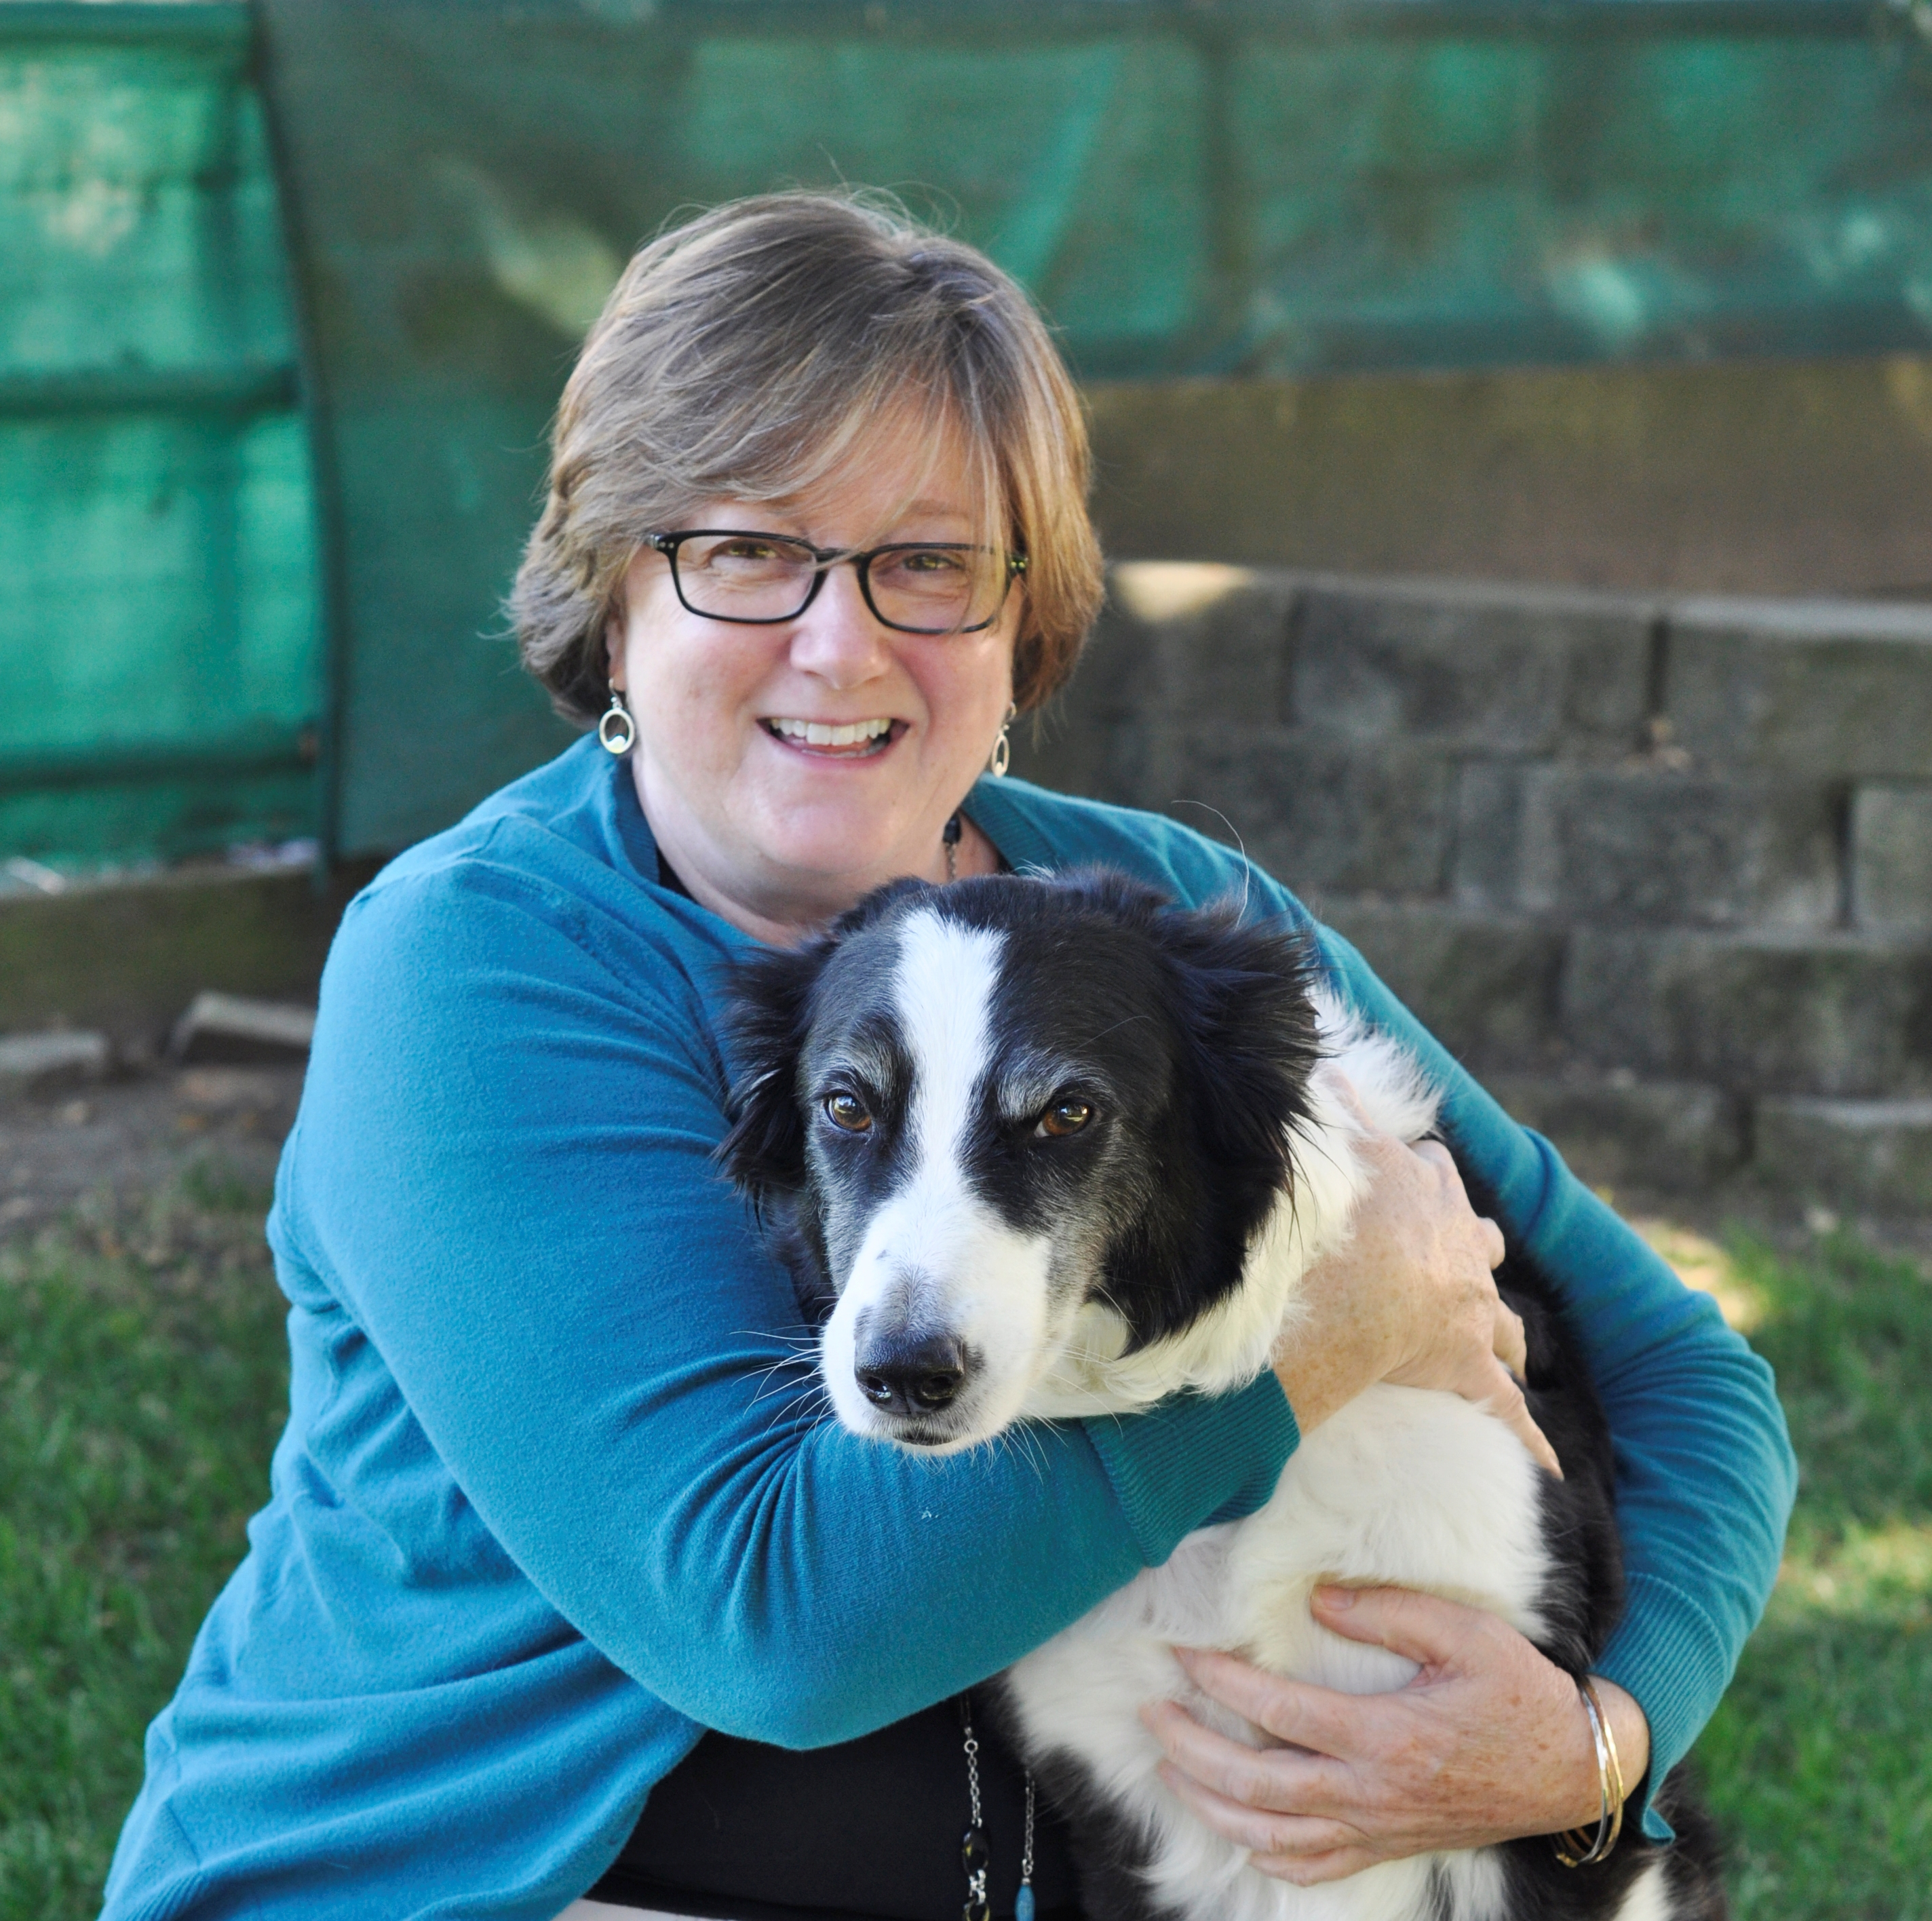 Ms. Blackman and her therapy dog, Duncan, Photo Credit: Kristin Herrara